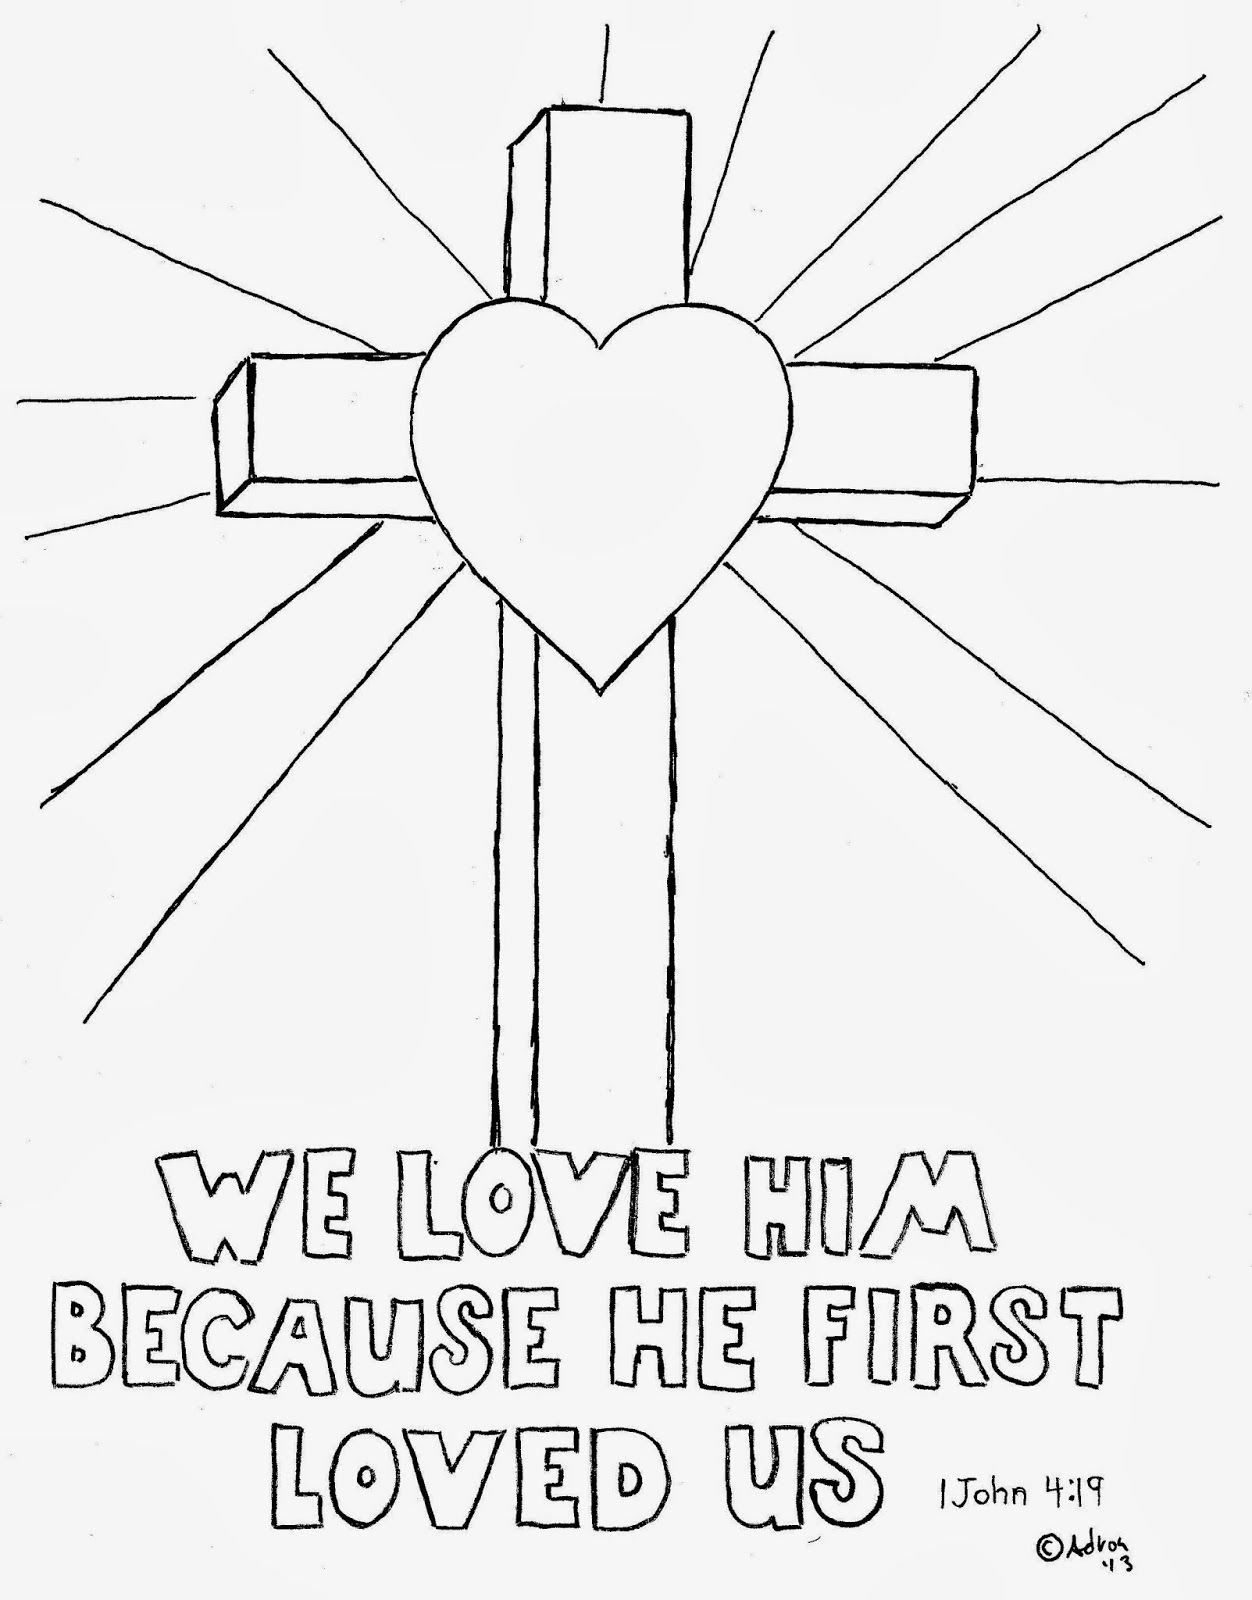 Coloring pages for john 9 - 1 John Craft Coloring Pages For Kids By Mr Adron Cross Coloring Picture We Love Him Because He First Loved Us